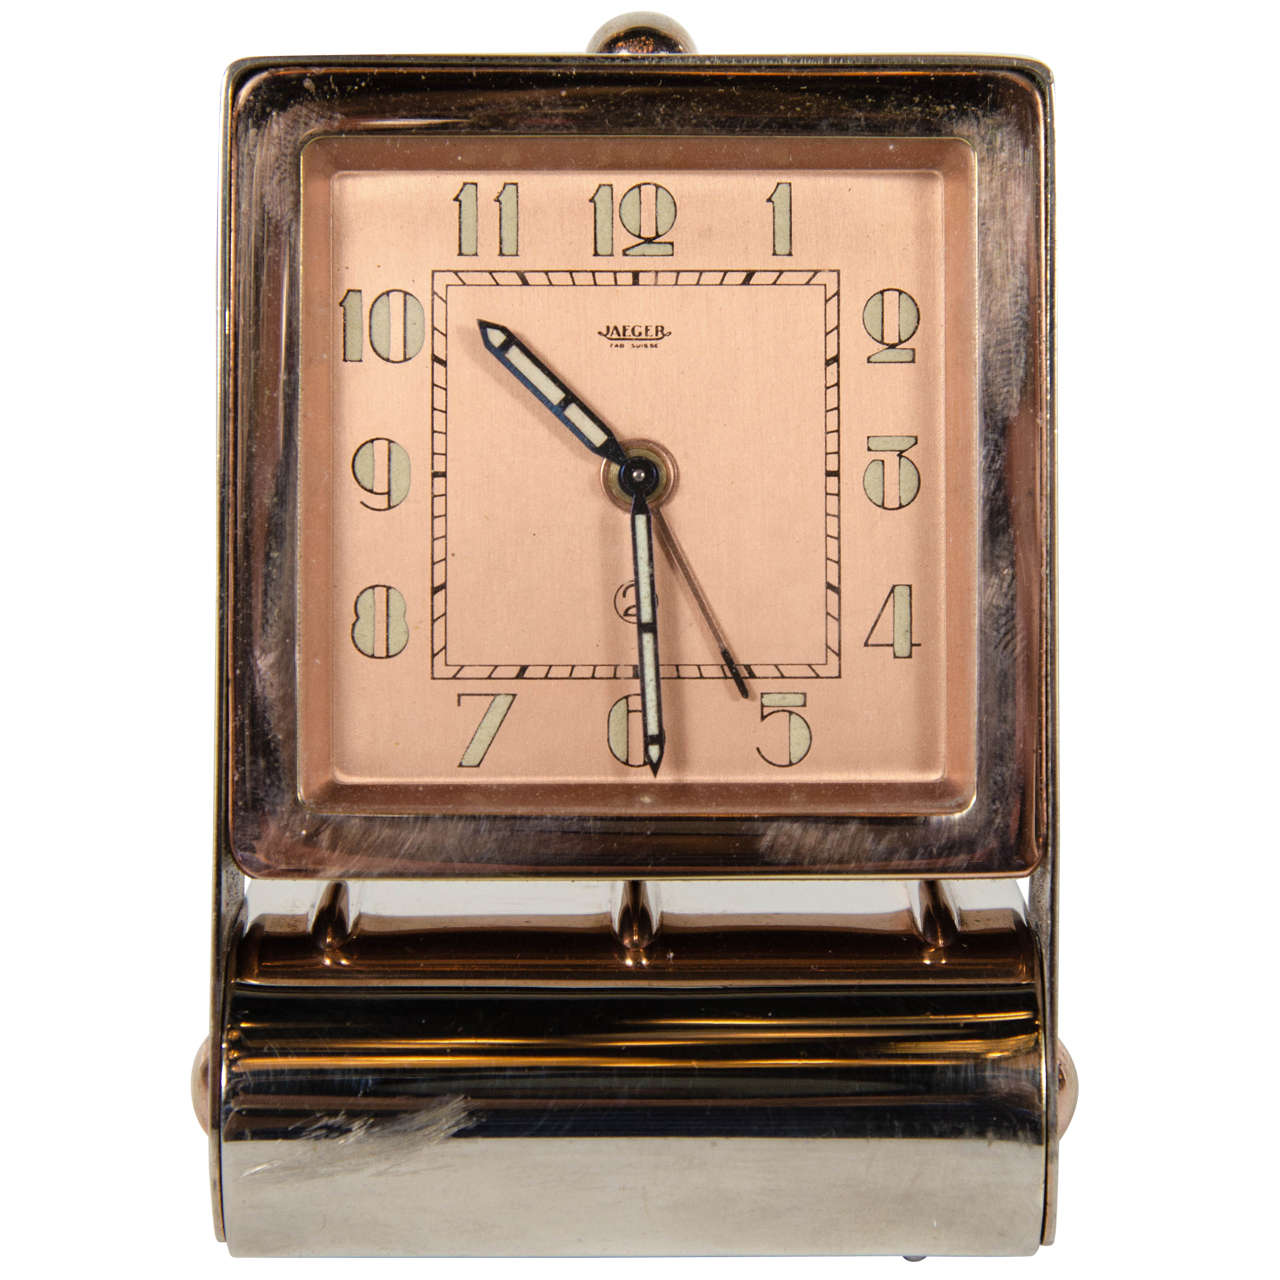 art deco rose gold table or travel alarm clock at 1stdibs. Black Bedroom Furniture Sets. Home Design Ideas